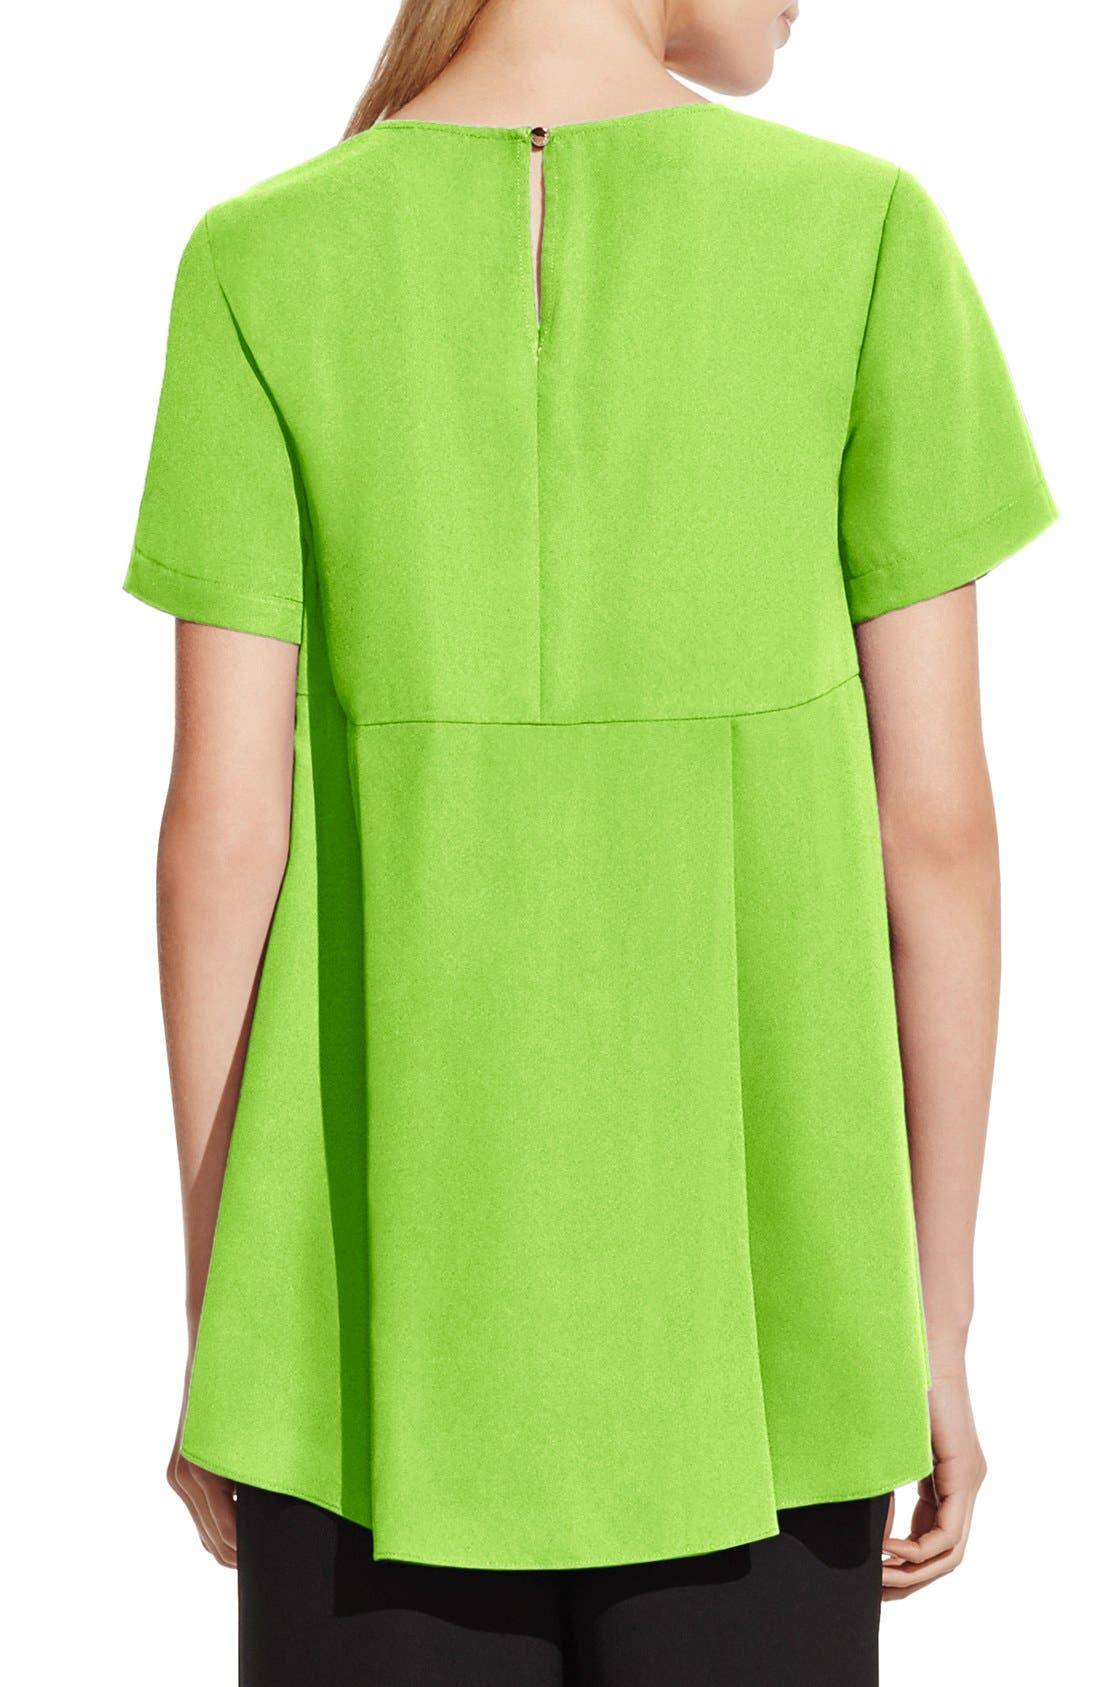 VINCE CAMUTO,                             Short Sleeve High/Low Hem Blouse,                             Alternate thumbnail 2, color,                             304